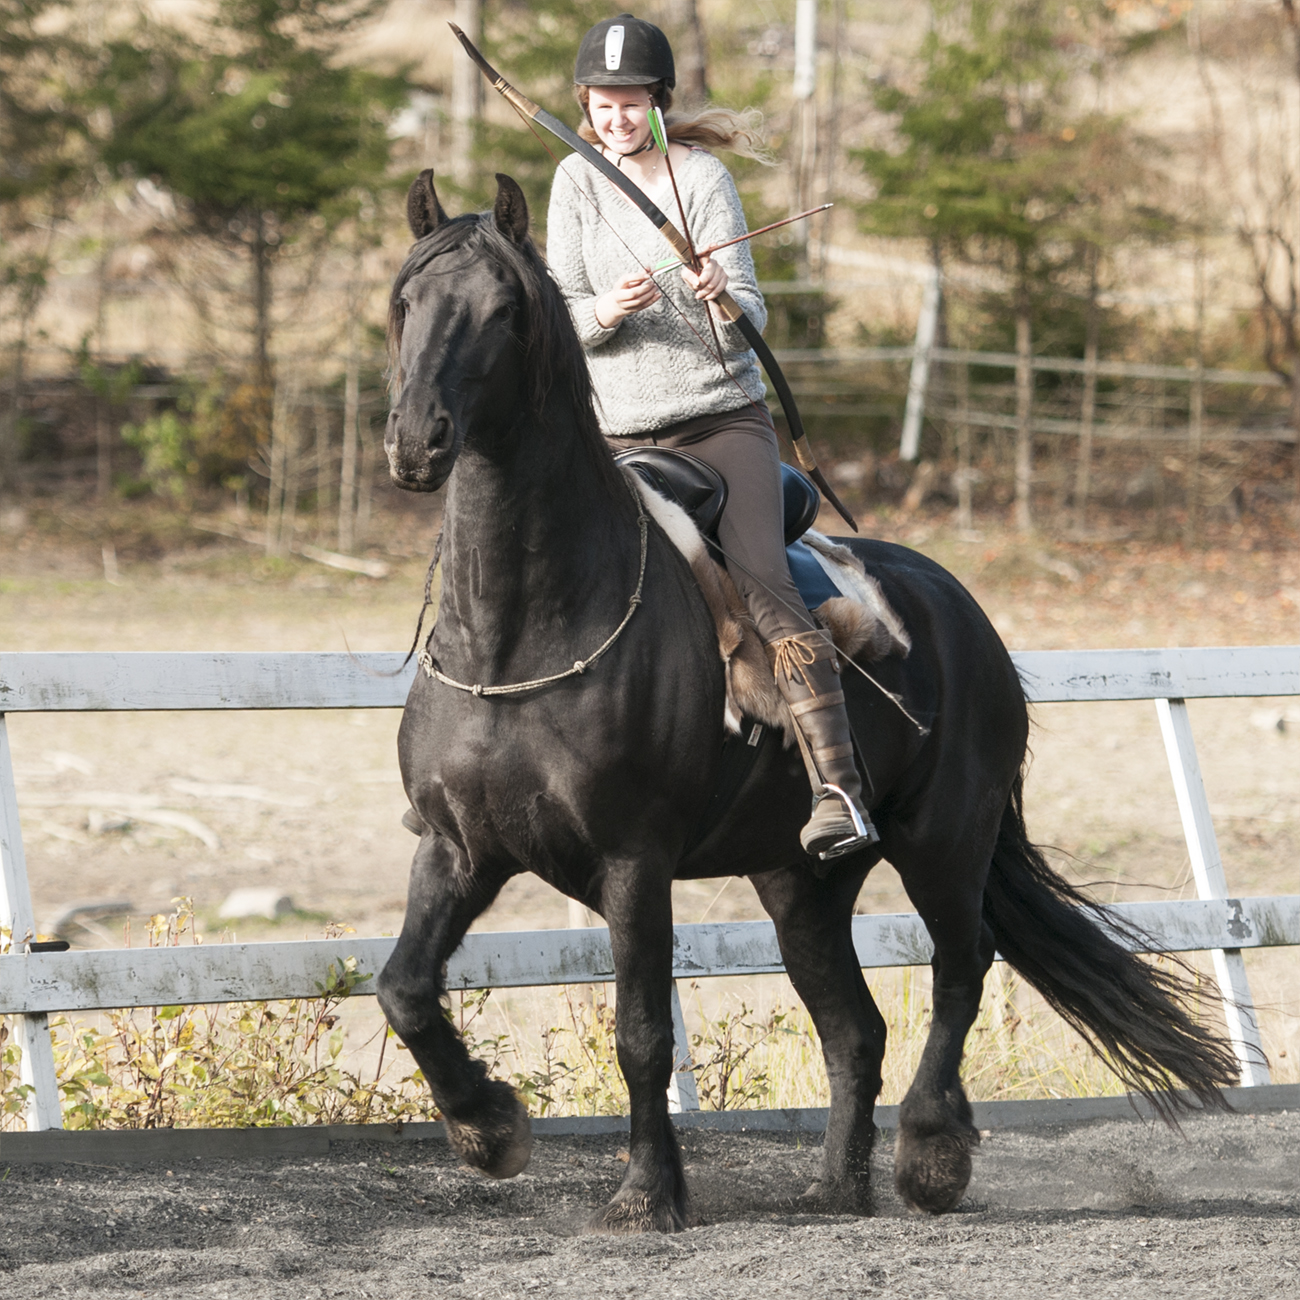 mounted archery bridleless batman3